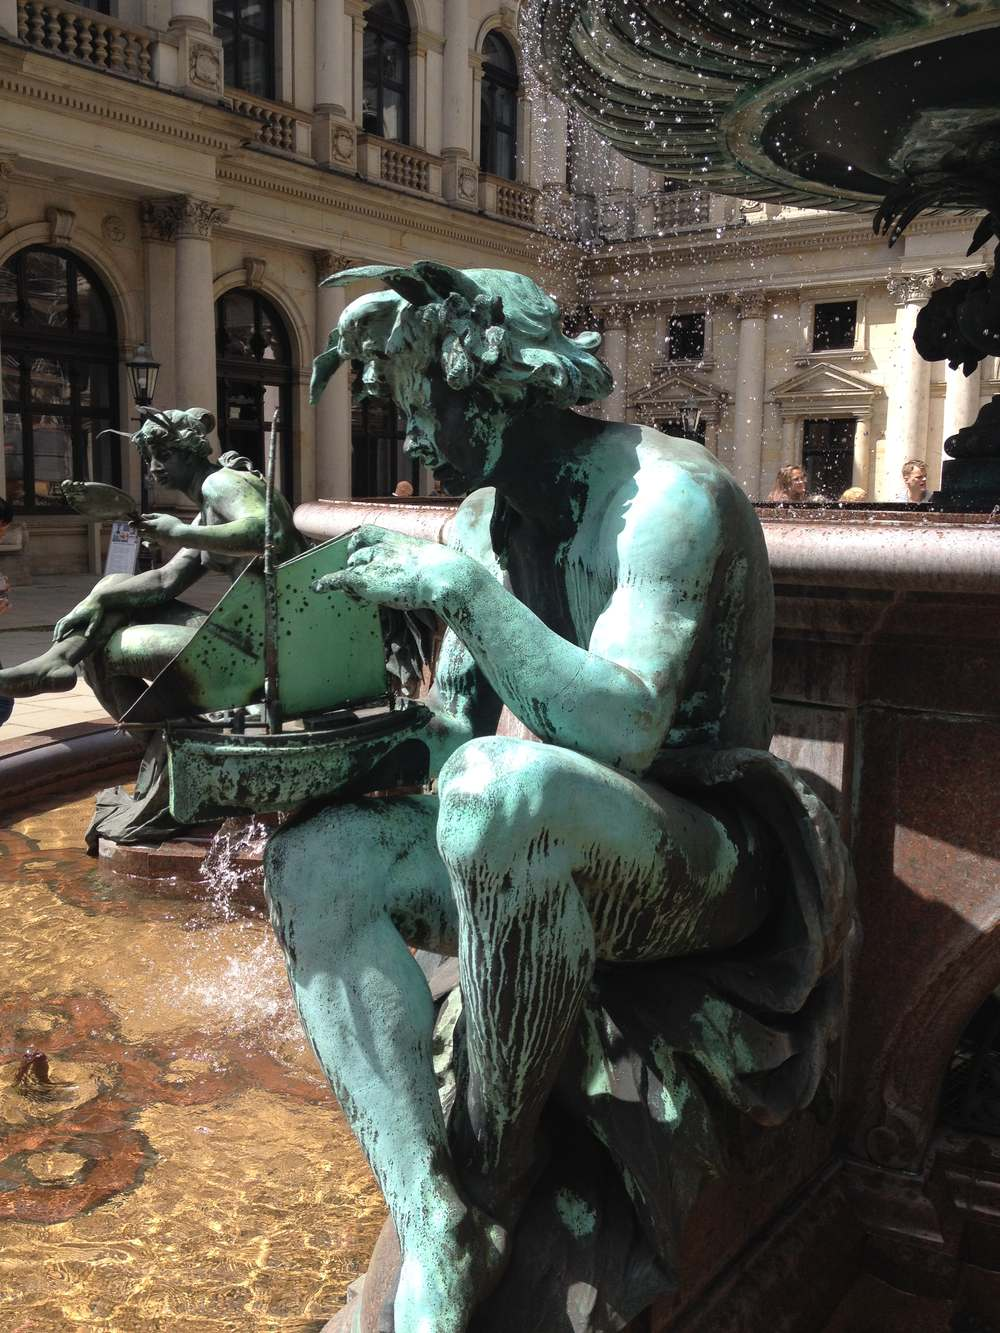 The fountain element in the Town Hall Square in Hamburg, Germany